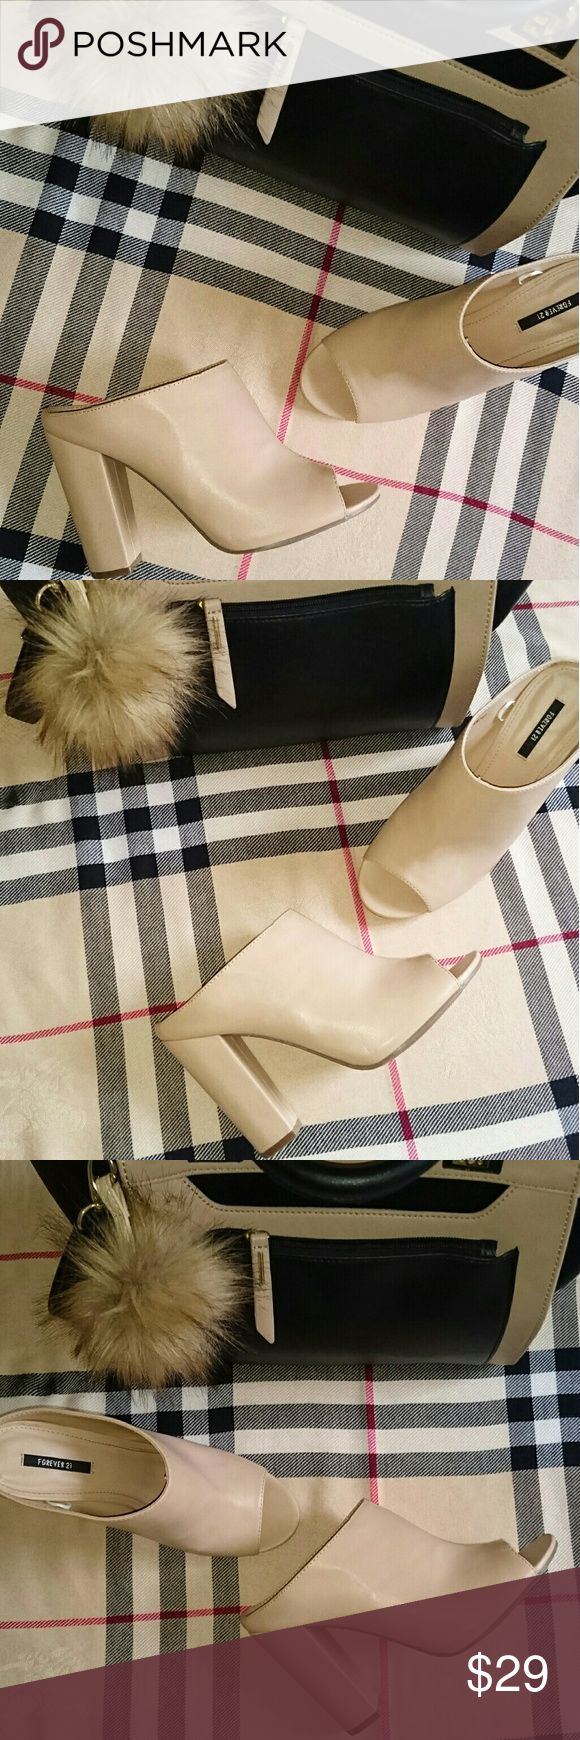 Tan nude open toe chunky block heels mules sandals Excellent never used outside. Soft and comfy apprx 4 inch heel. Nude shade. Only flaw is left show has gray marks. This is Forever 21's affordable version of Vince mule. Vince Shoes